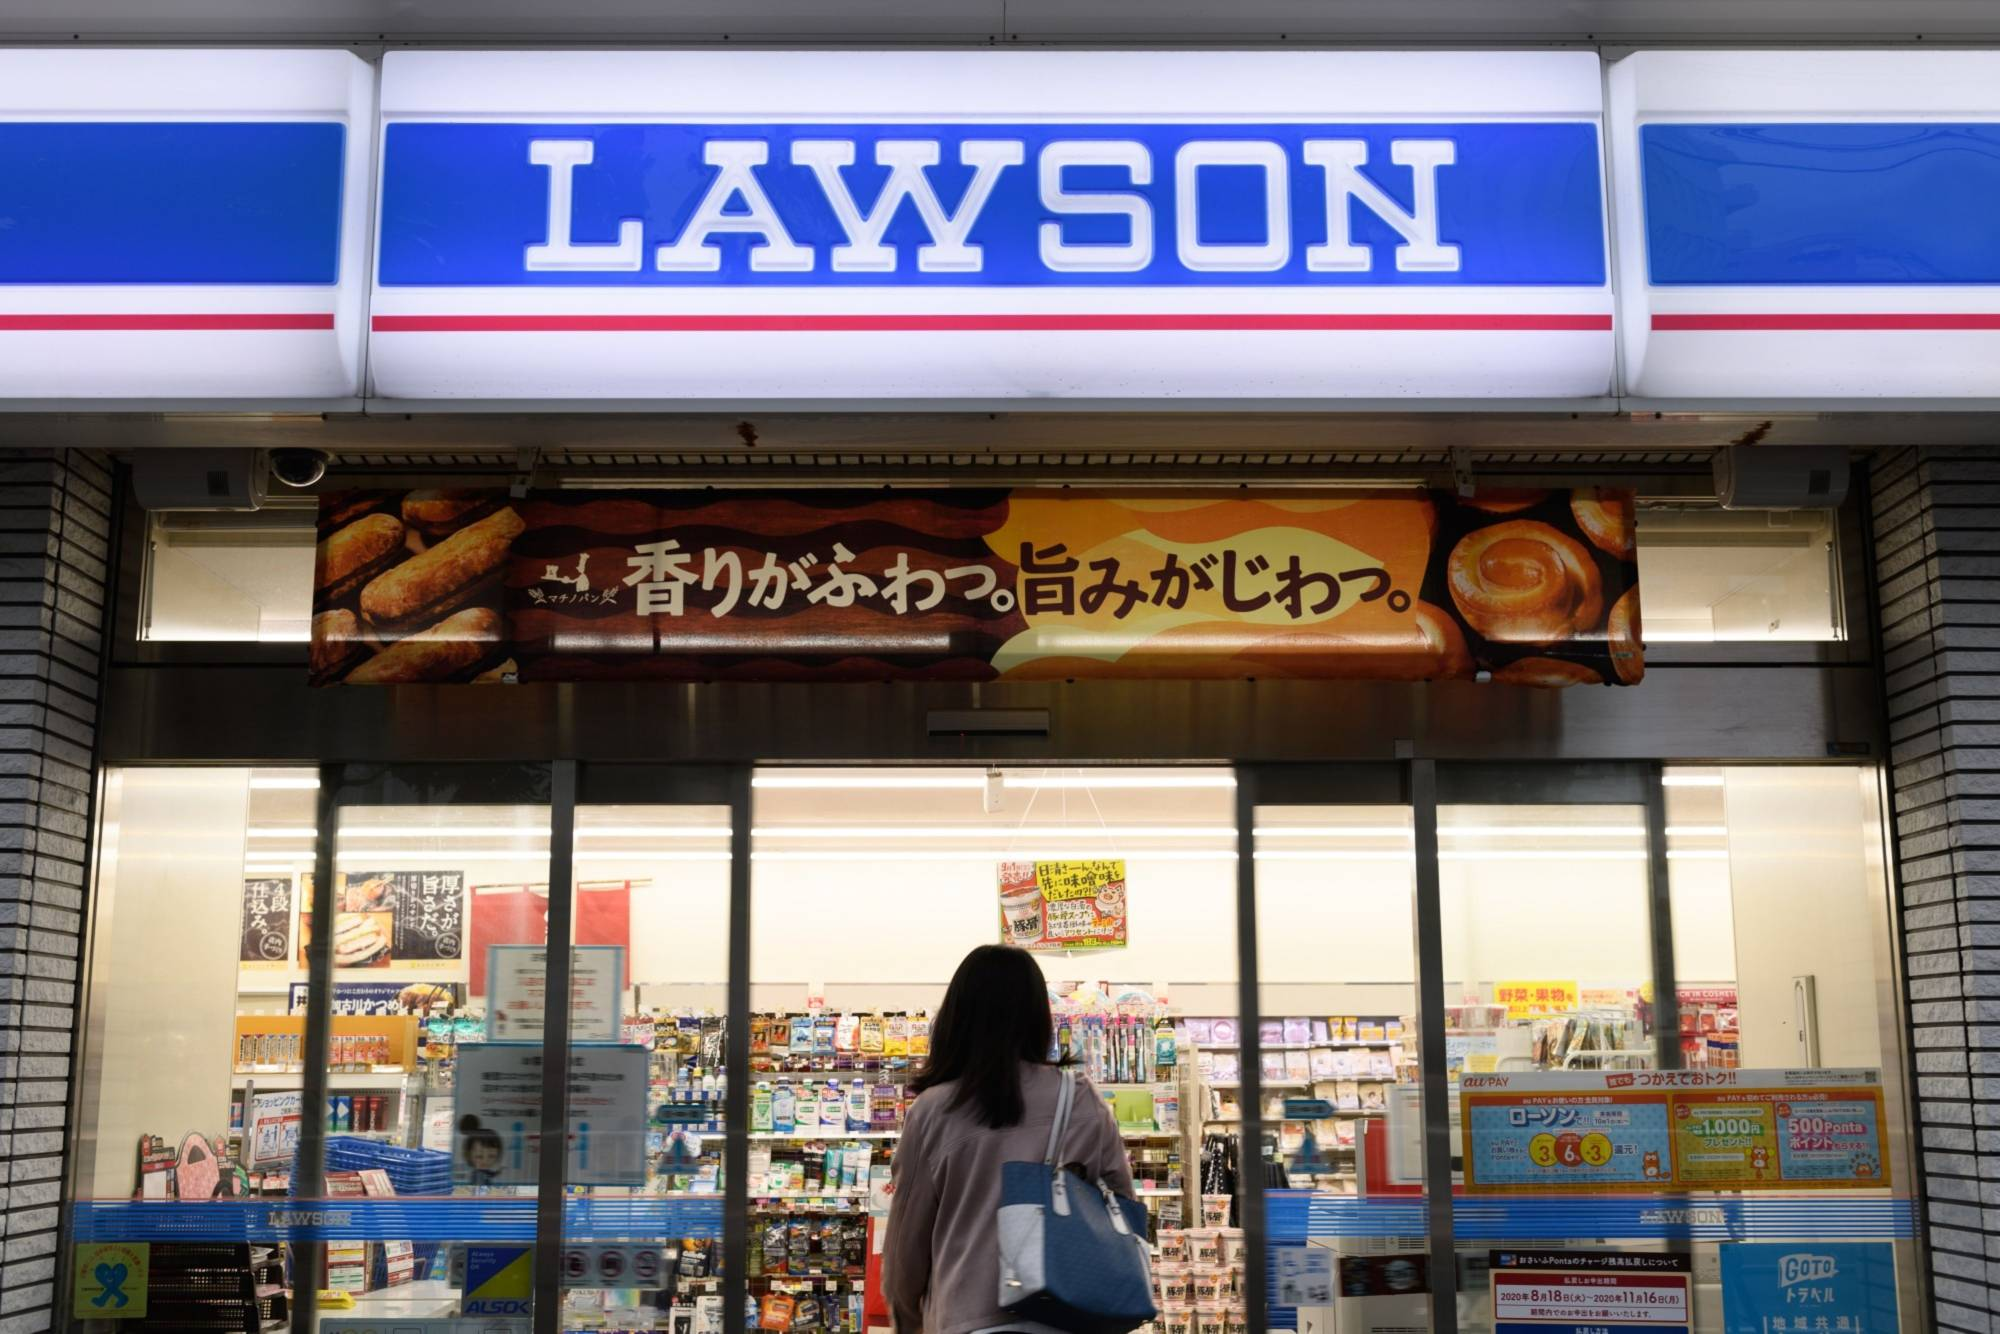 Lawson Inc. will allow franchise owners to shut stores for several days between Dec. 30 and Jan. 3 in business districts where customers are likely to decline during the holidays, according to sources. | BLOOMBERG